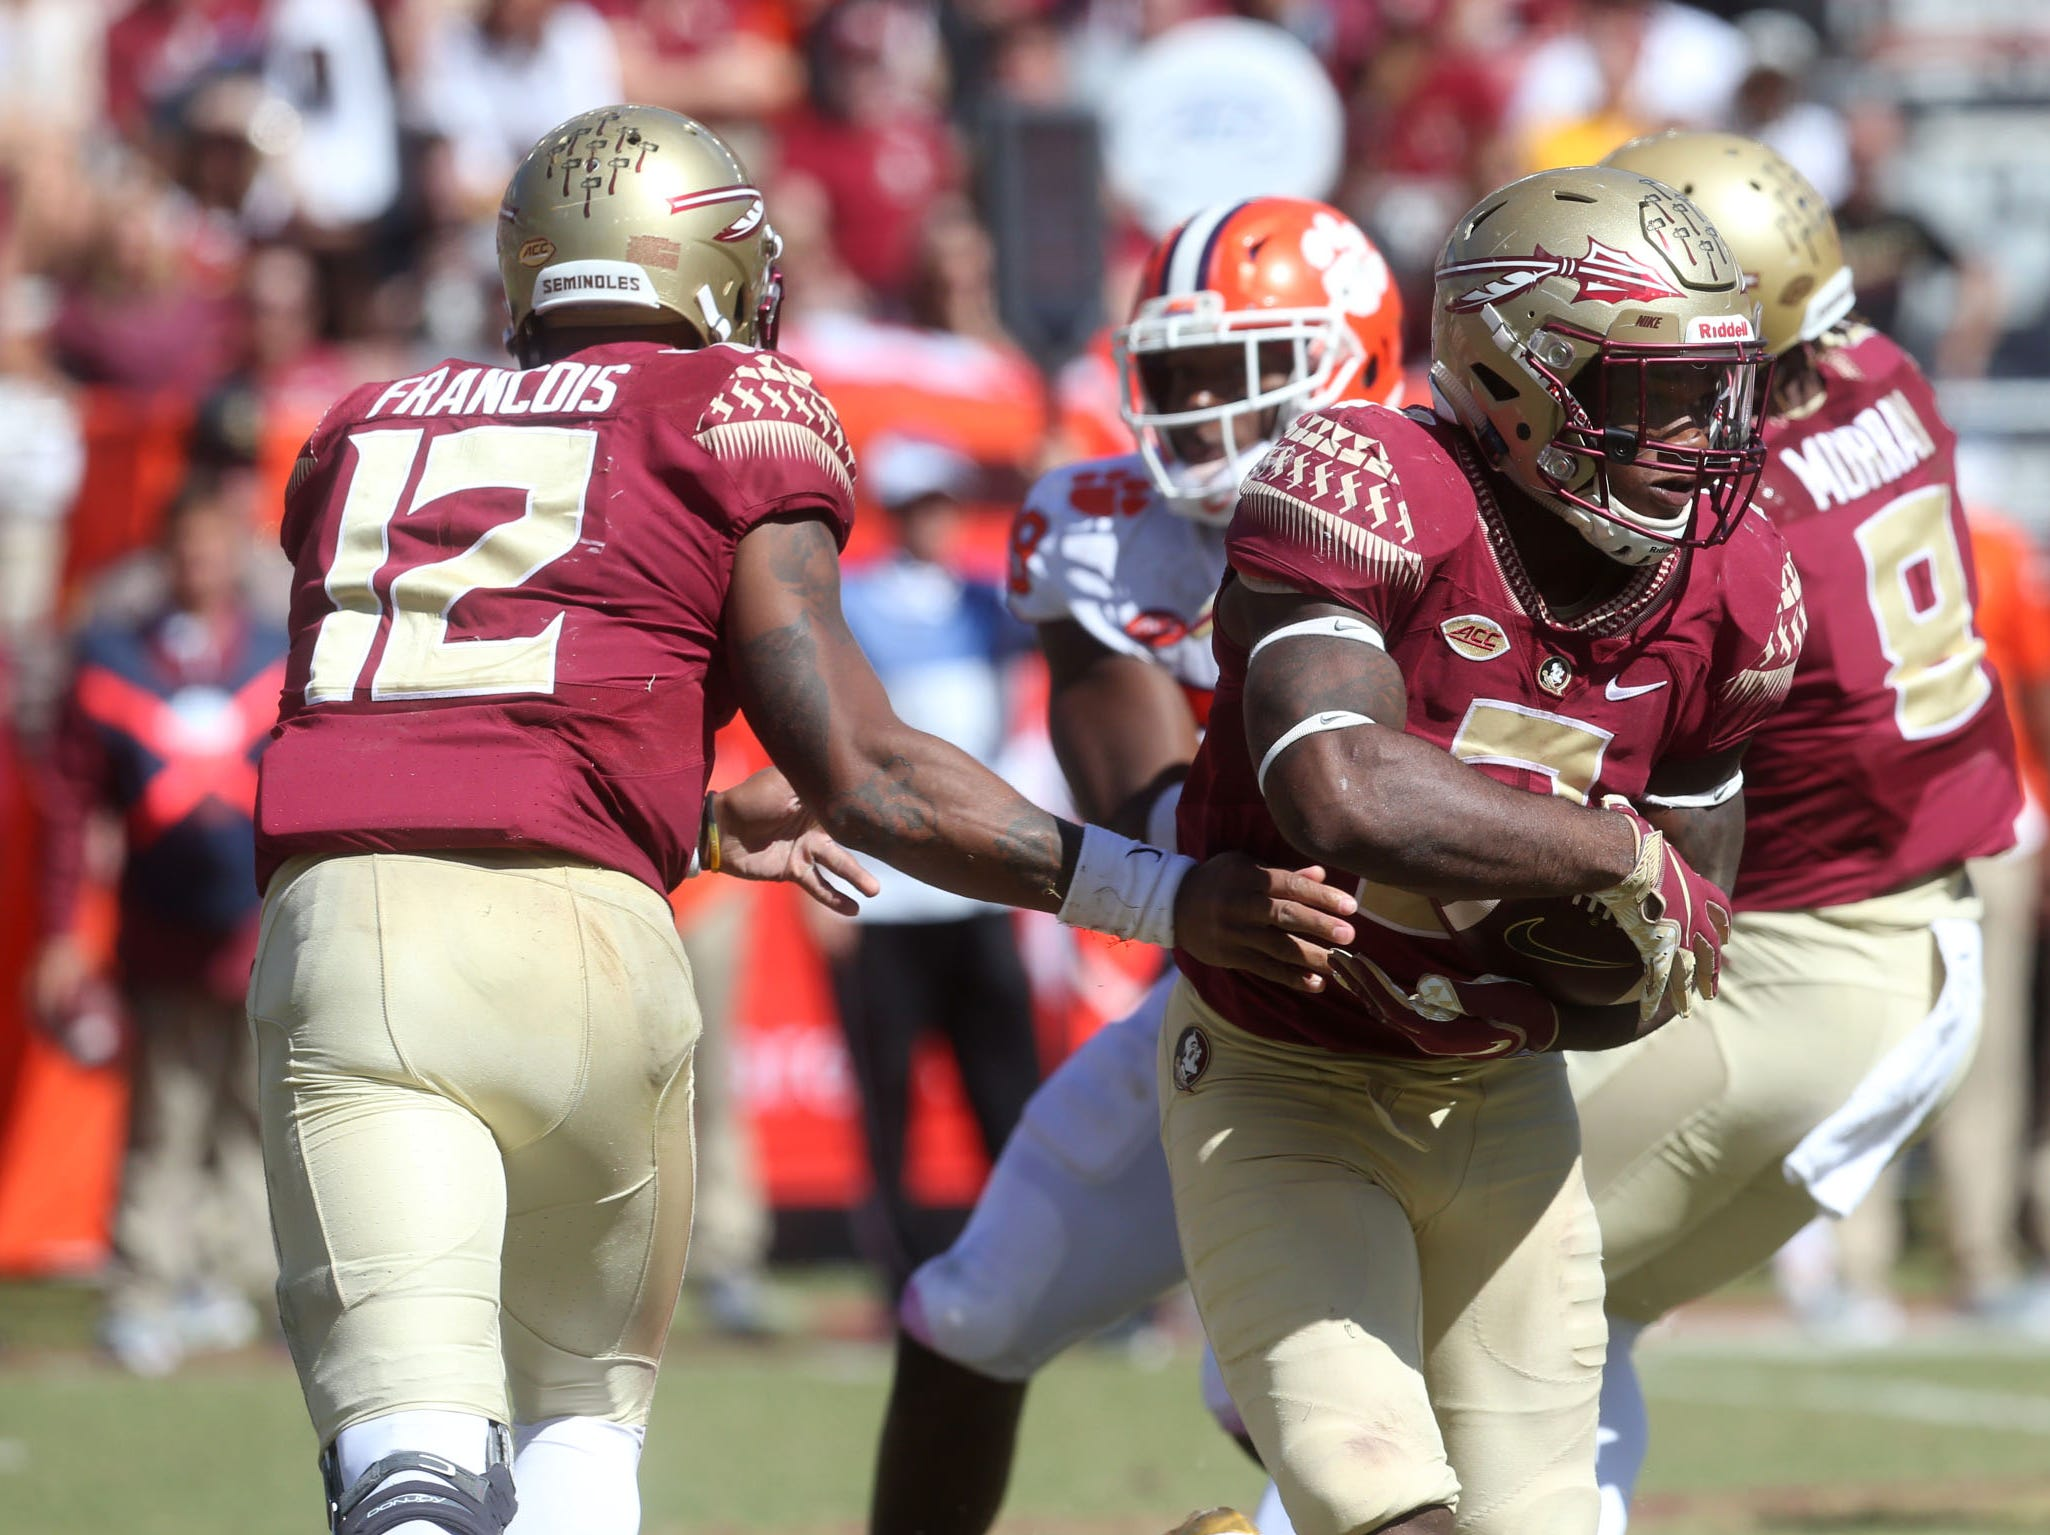 Florida State Seminoles running back Cam Akers (3) takes the hand off from Florida State Seminoles quarterback Deondre Francois (12) as the Florida State Seminoles take on the Clemson Tigers in college football at Doak S. Campbell Stadium on Saturday, Oct. 27, 2018.